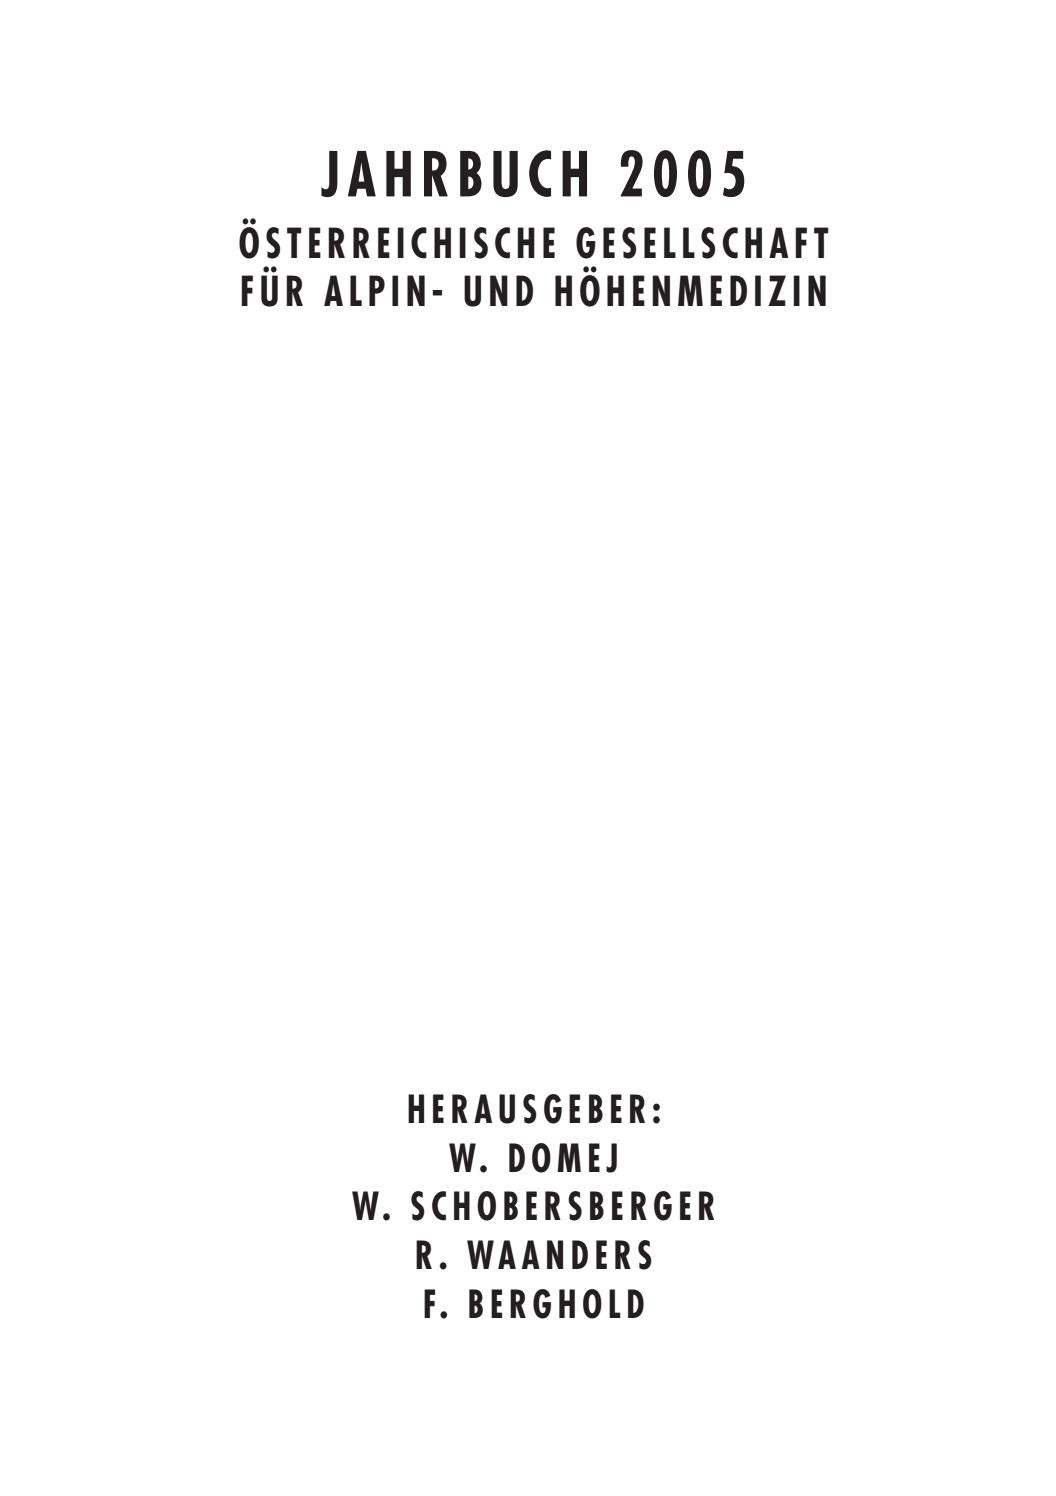 Jahrbuch 2005 by Reinhold Sigl - issuu on